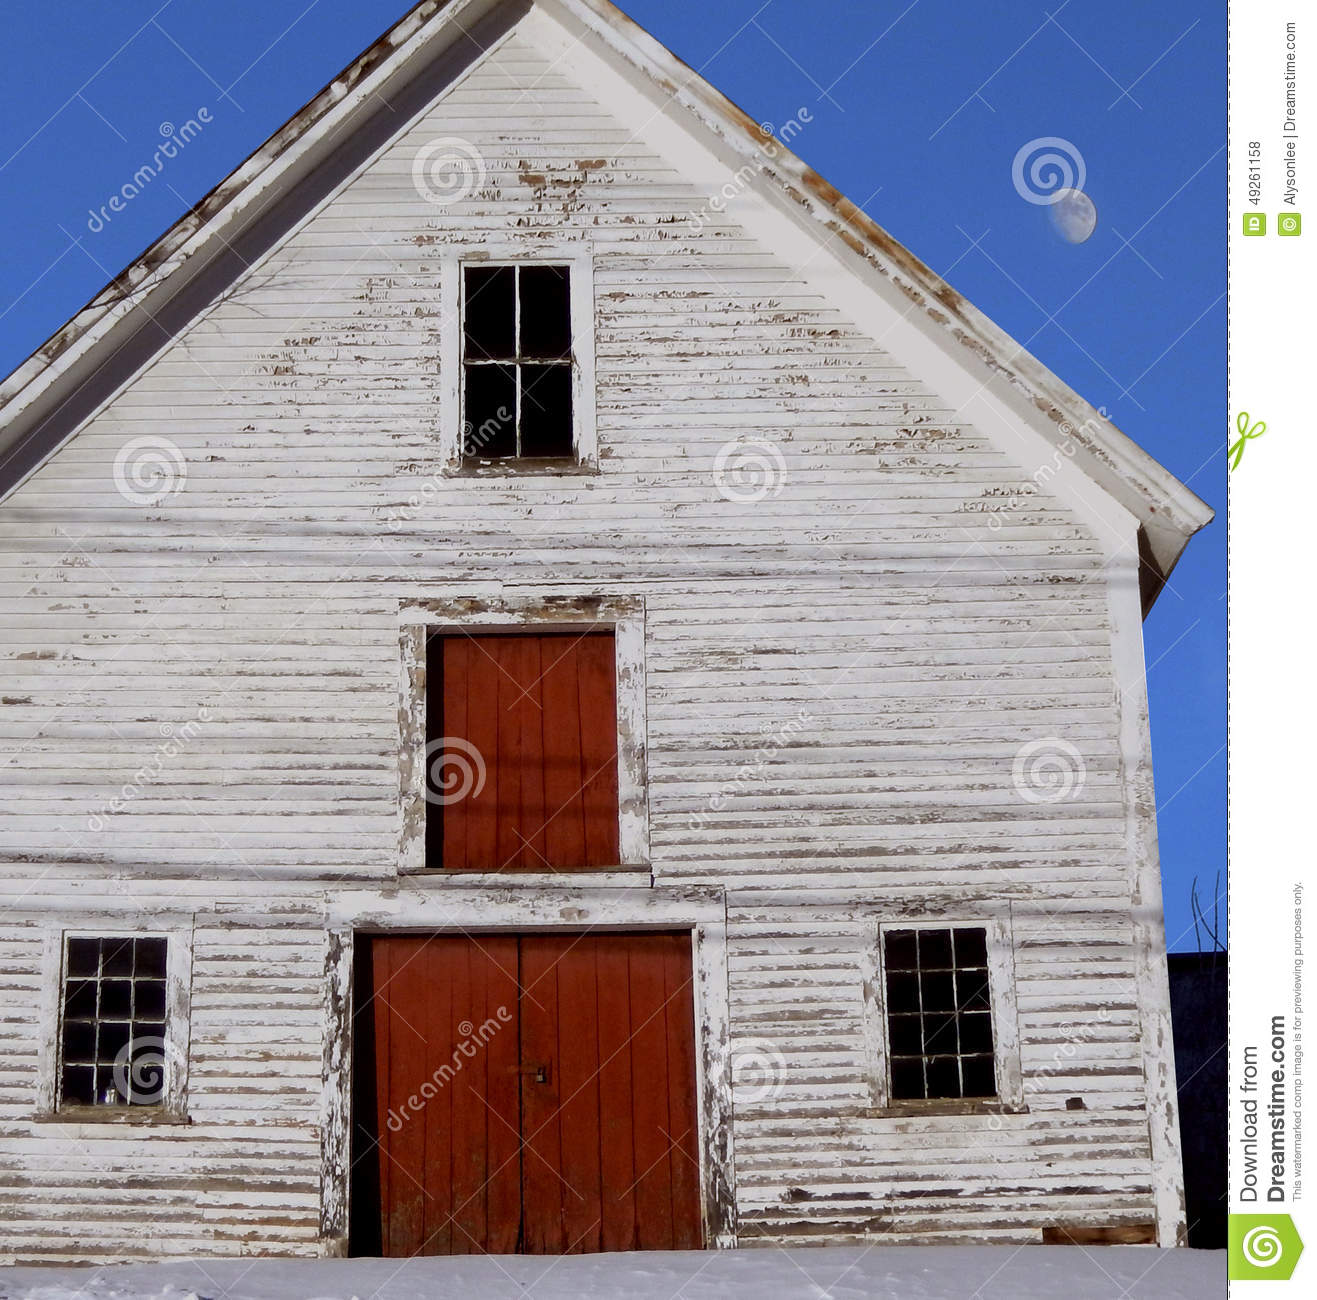 Royalty free house images